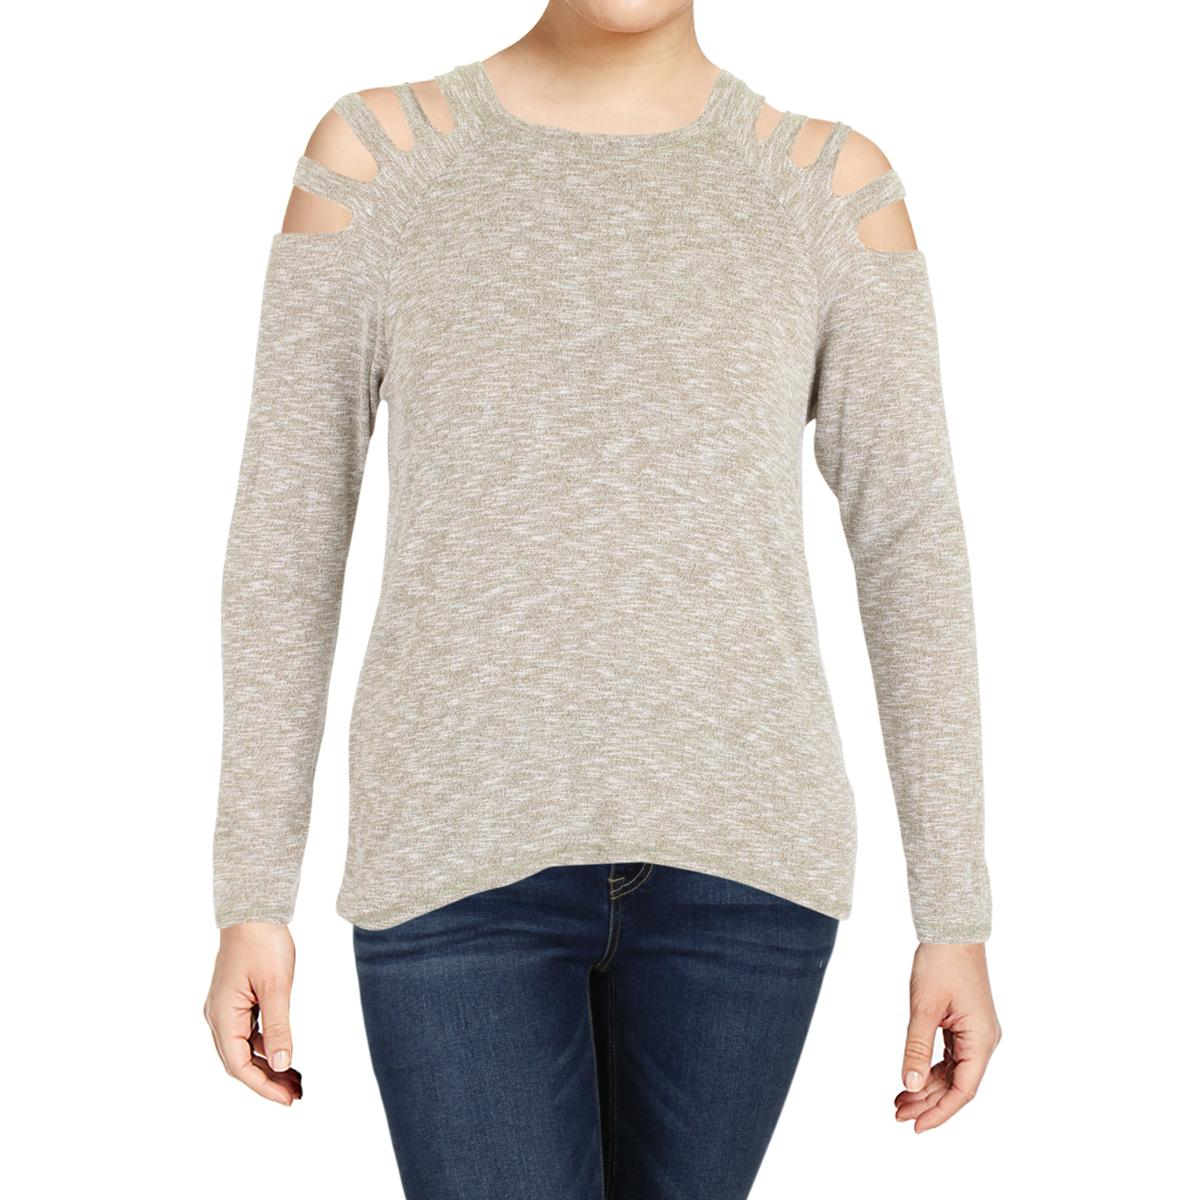 7473bbdc8a3 Elan Womens Cut-Out Cold Shoulder Marled Pullover Top Shirt BHFO ...